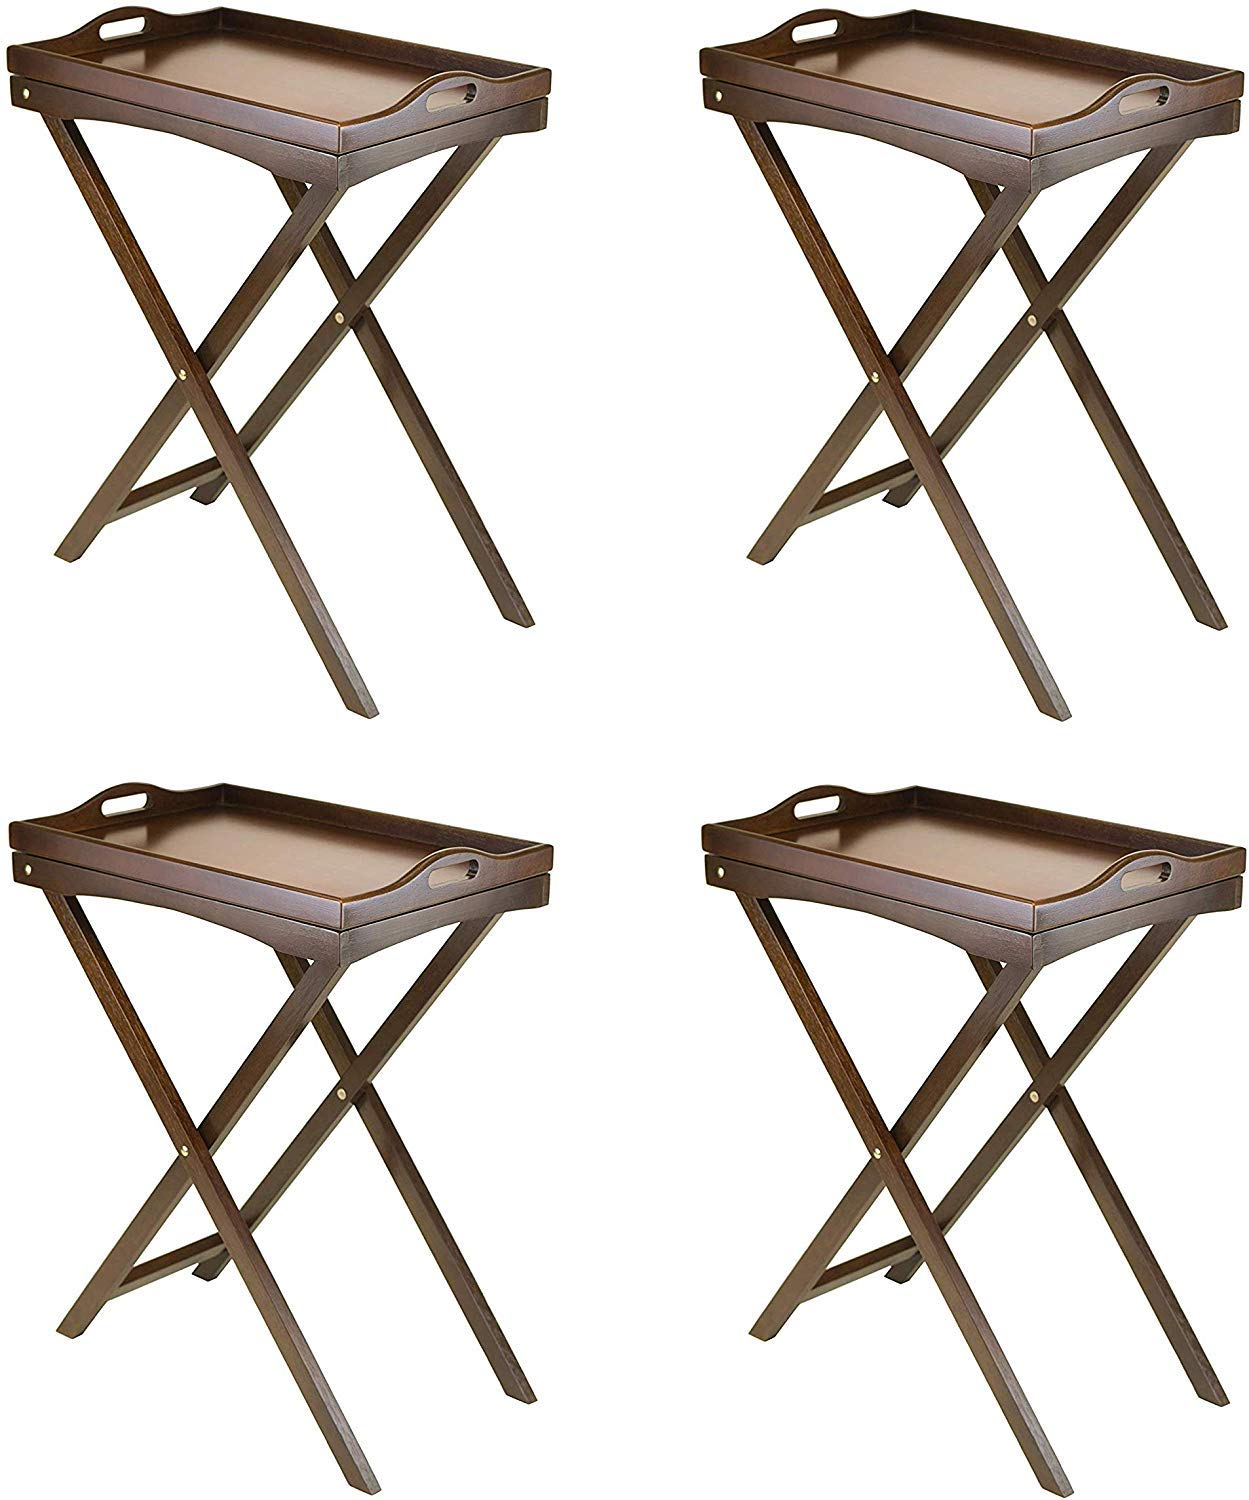 Winsome Wood Devon Butler TV Table with Serving Tray (Pack of 4) by Winsome Wood